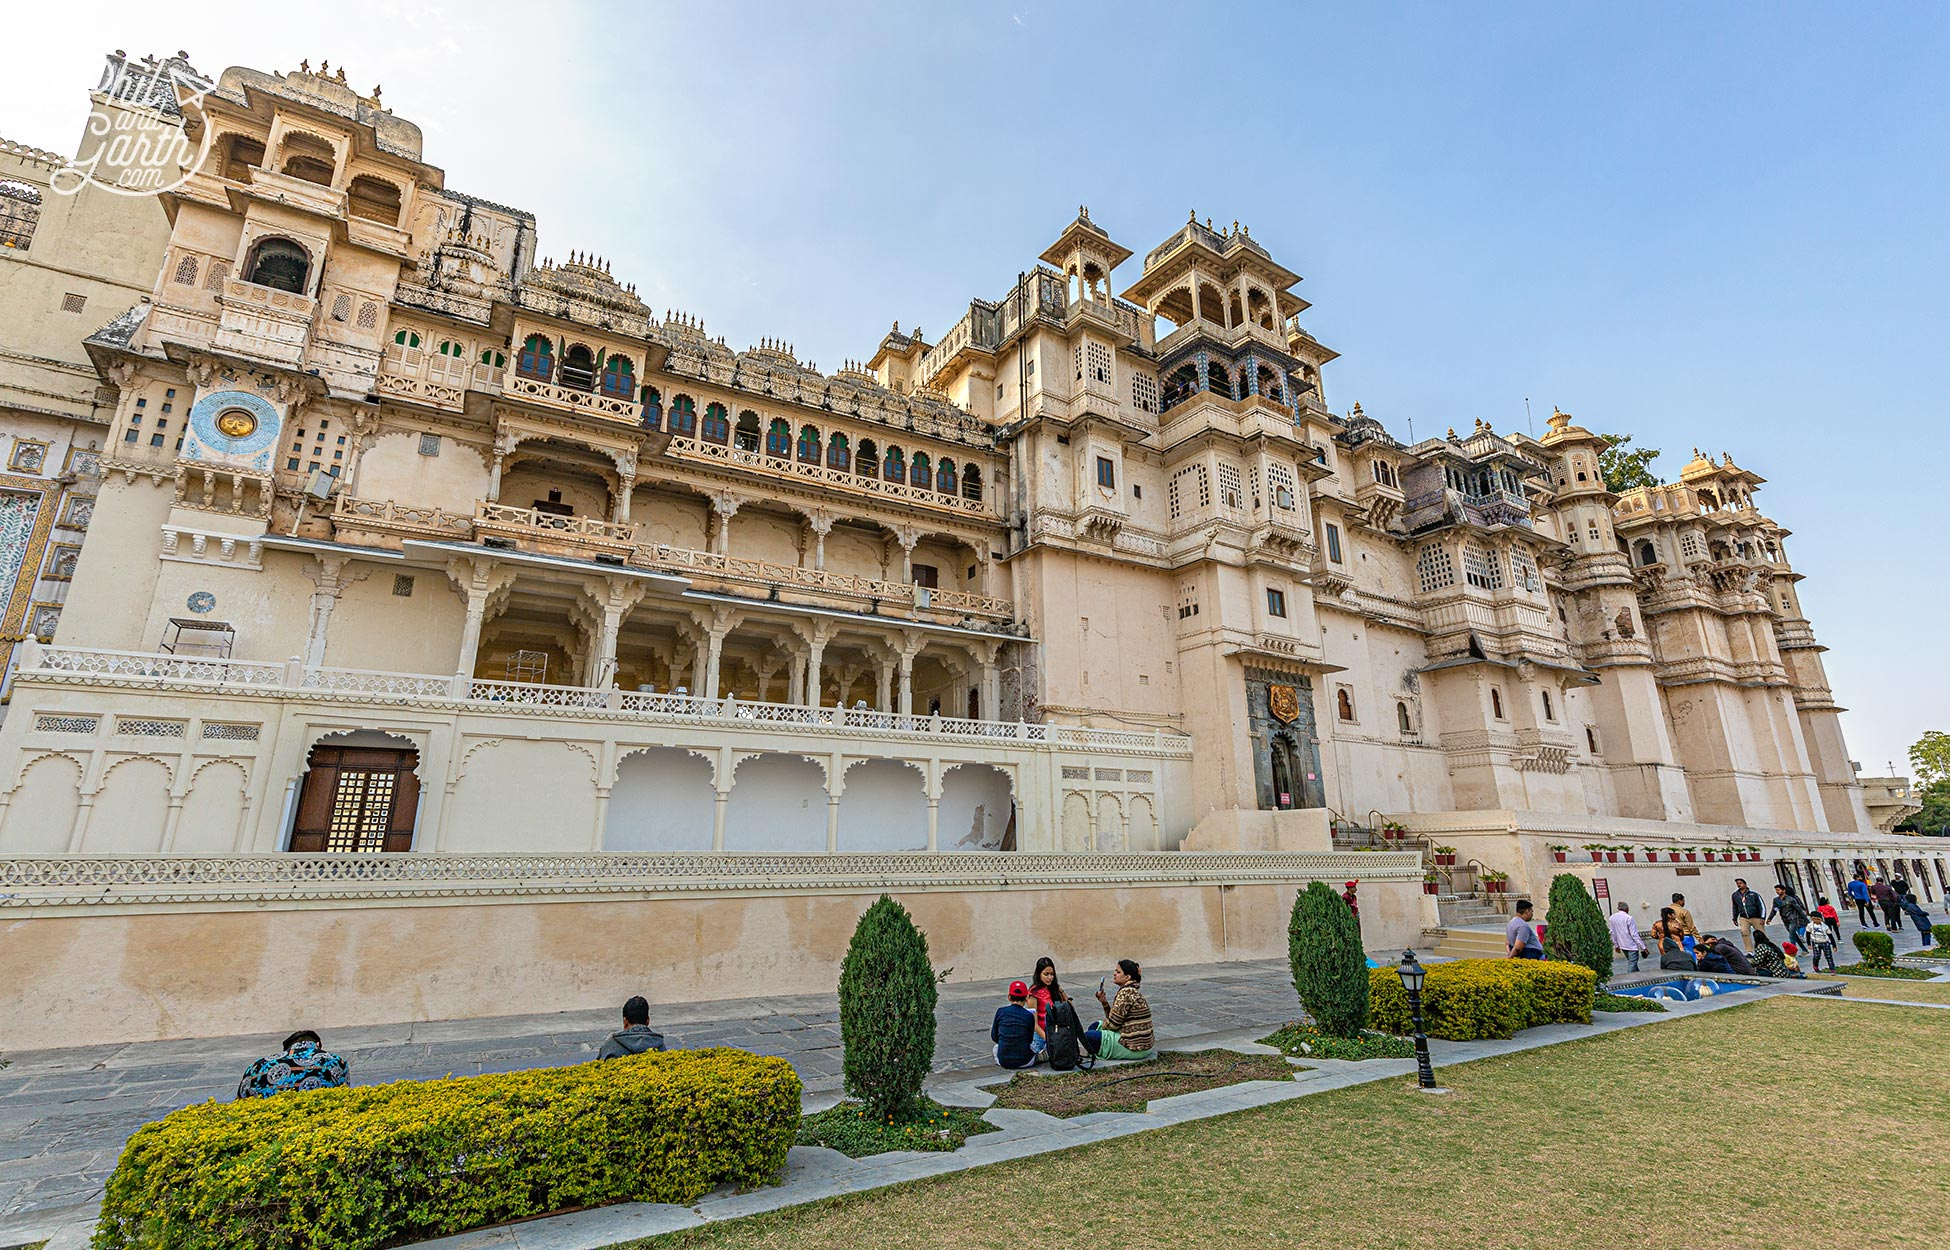 The incredibly beautiful City Palace - The must see attraction of Udaipur